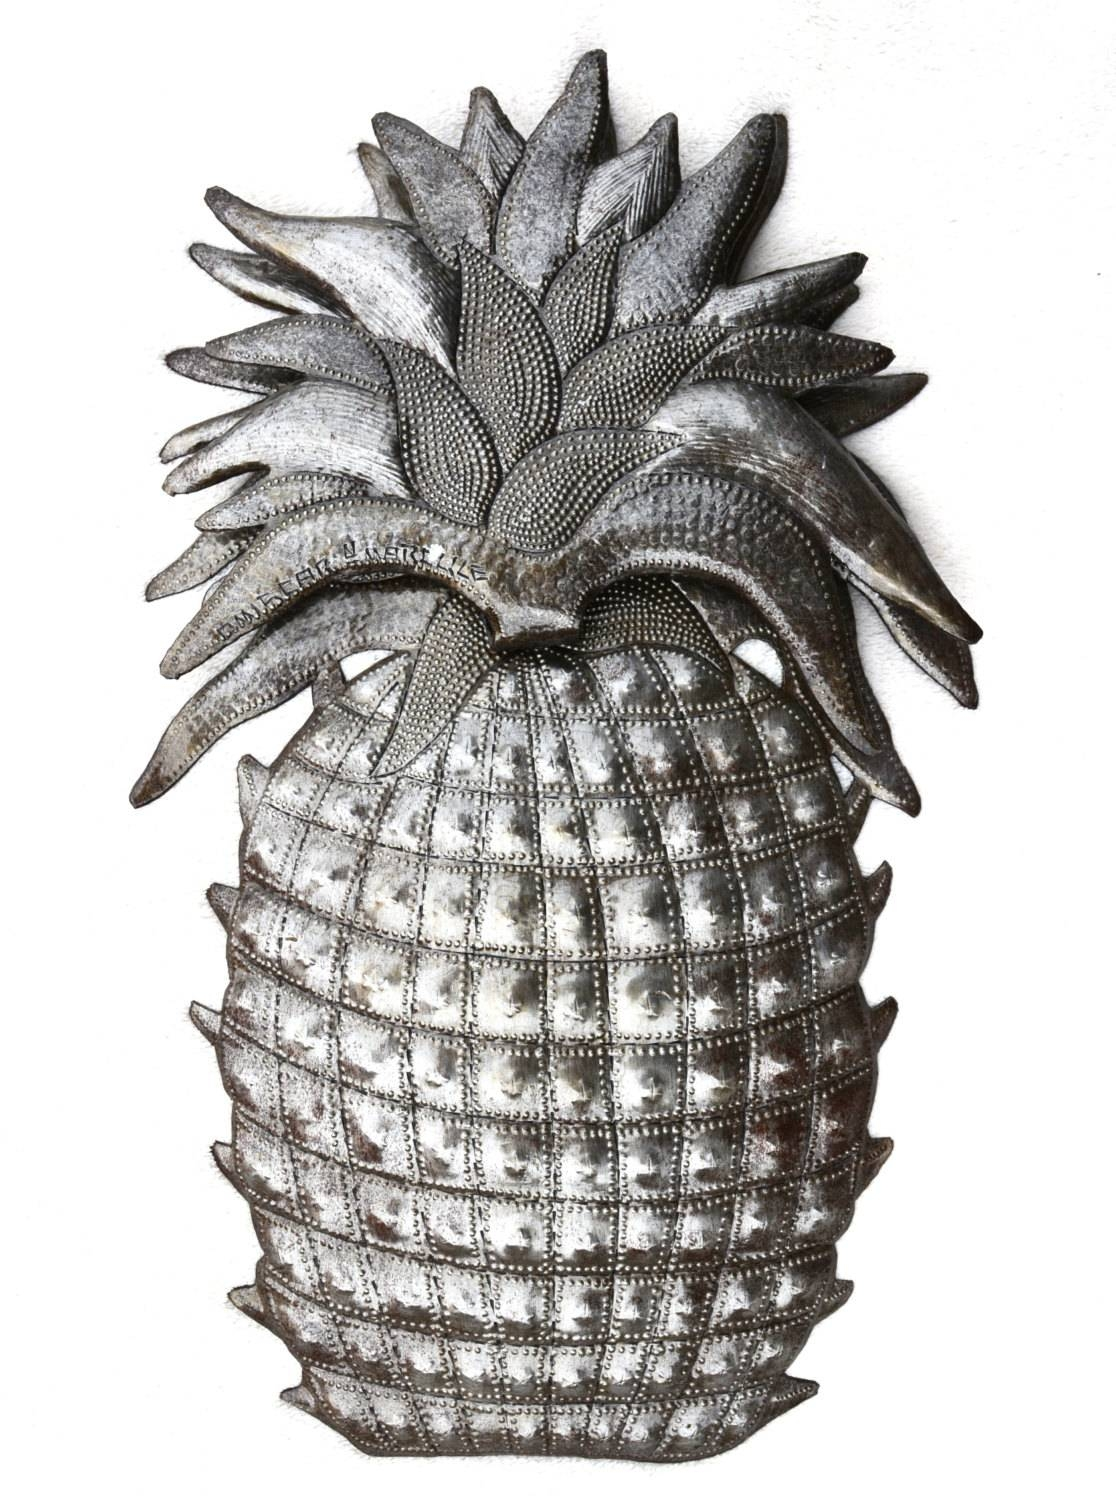 Pineapple, Welcome Home Wall Decor, Recycled Haitian Metal Steel Pertaining To Recent Pineapple Metal Wall Art (View 5 of 20)